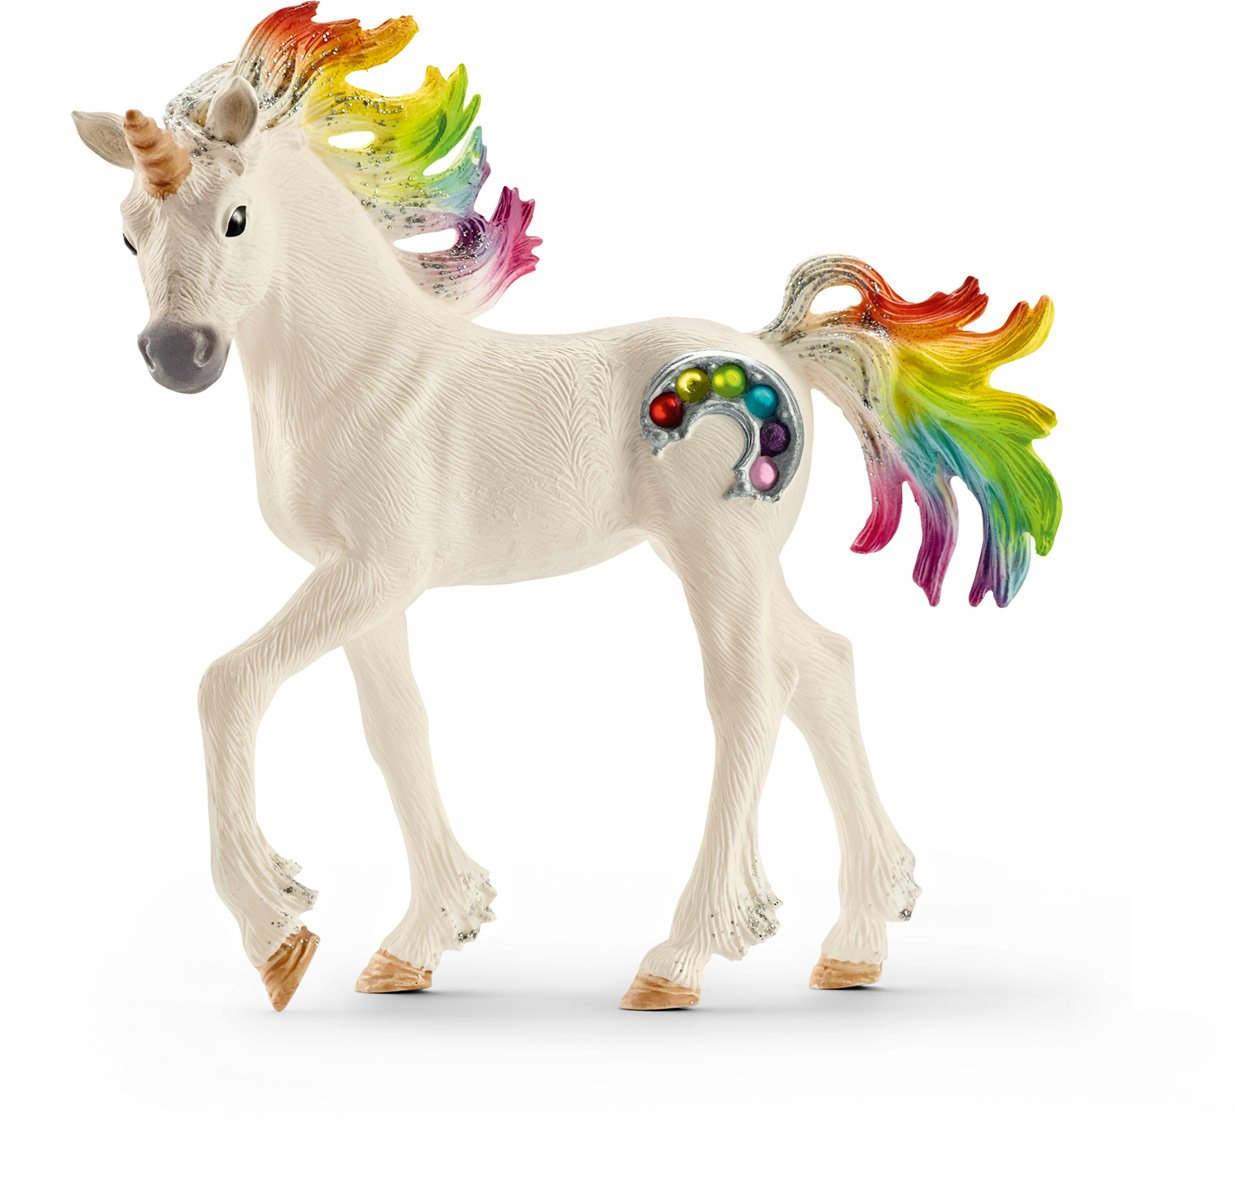 SCHLEICH bayala Rainbow Unicorn Toy Foal for Kids Ages 5-12 with Glitter and Rhinestones 3